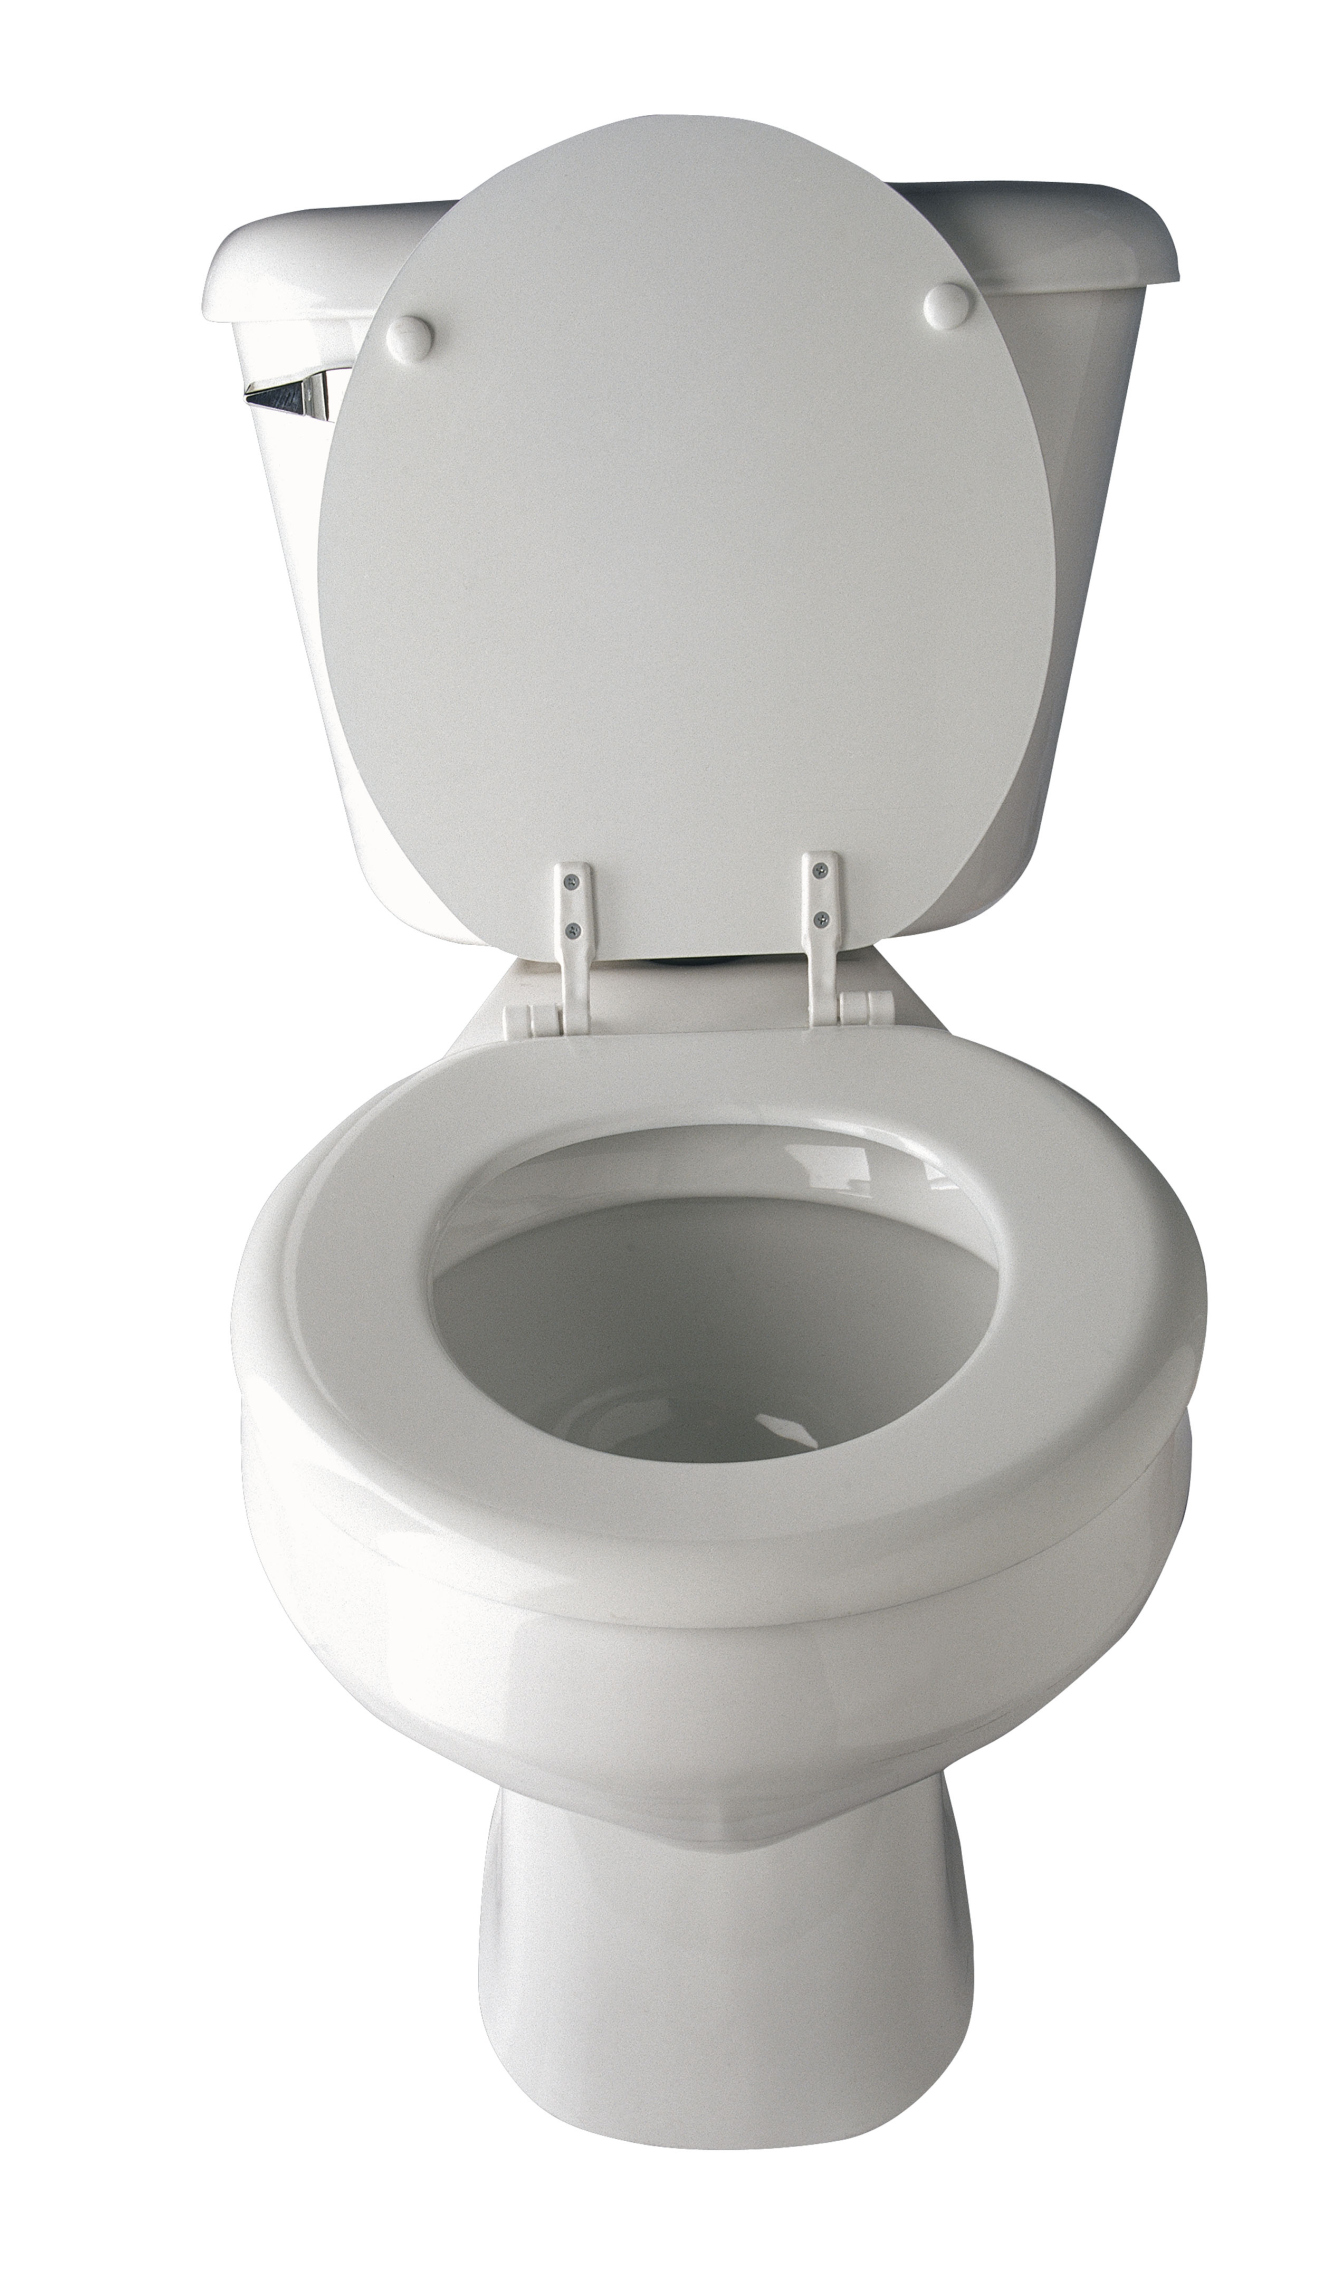 Gurgling Sounds In Sink After Flushing The Toilet Ehow Uk